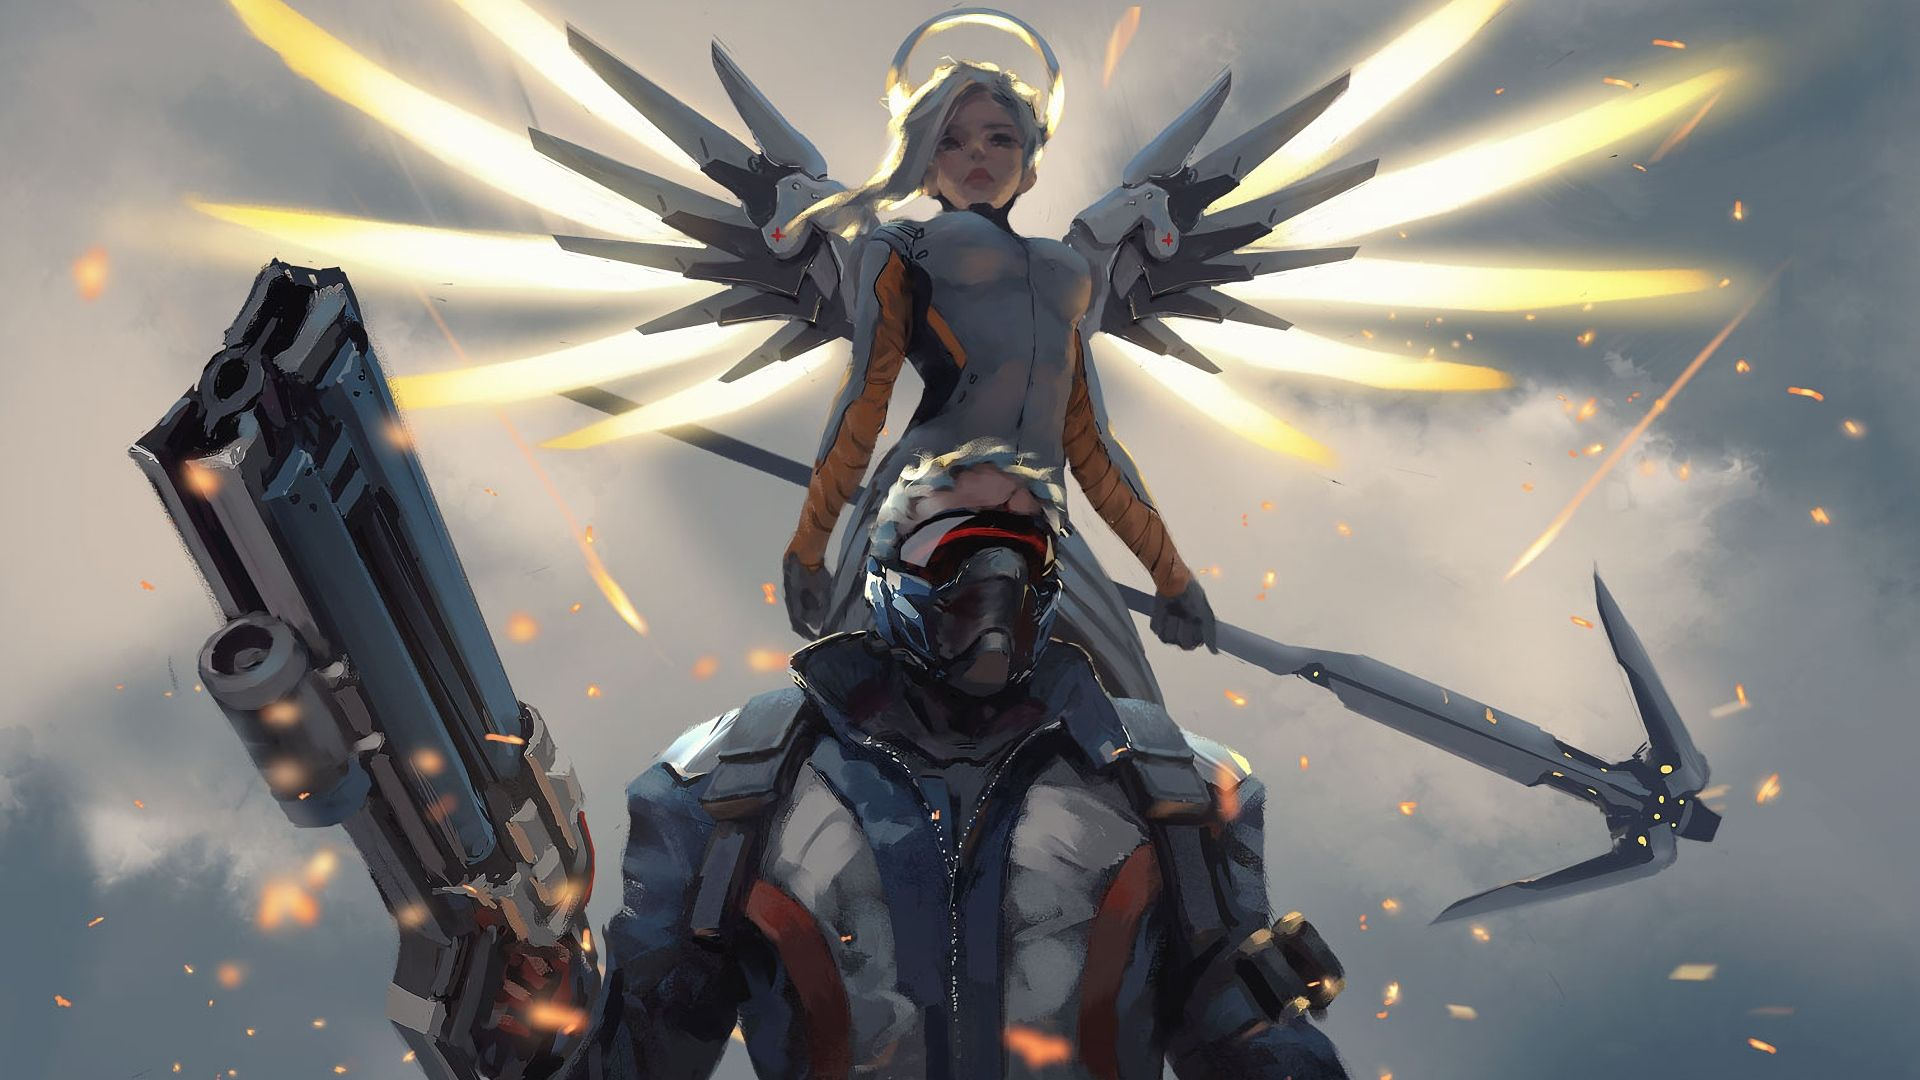 Mercy And Soldier76 Overwatch 1920x1080 Wallpaper